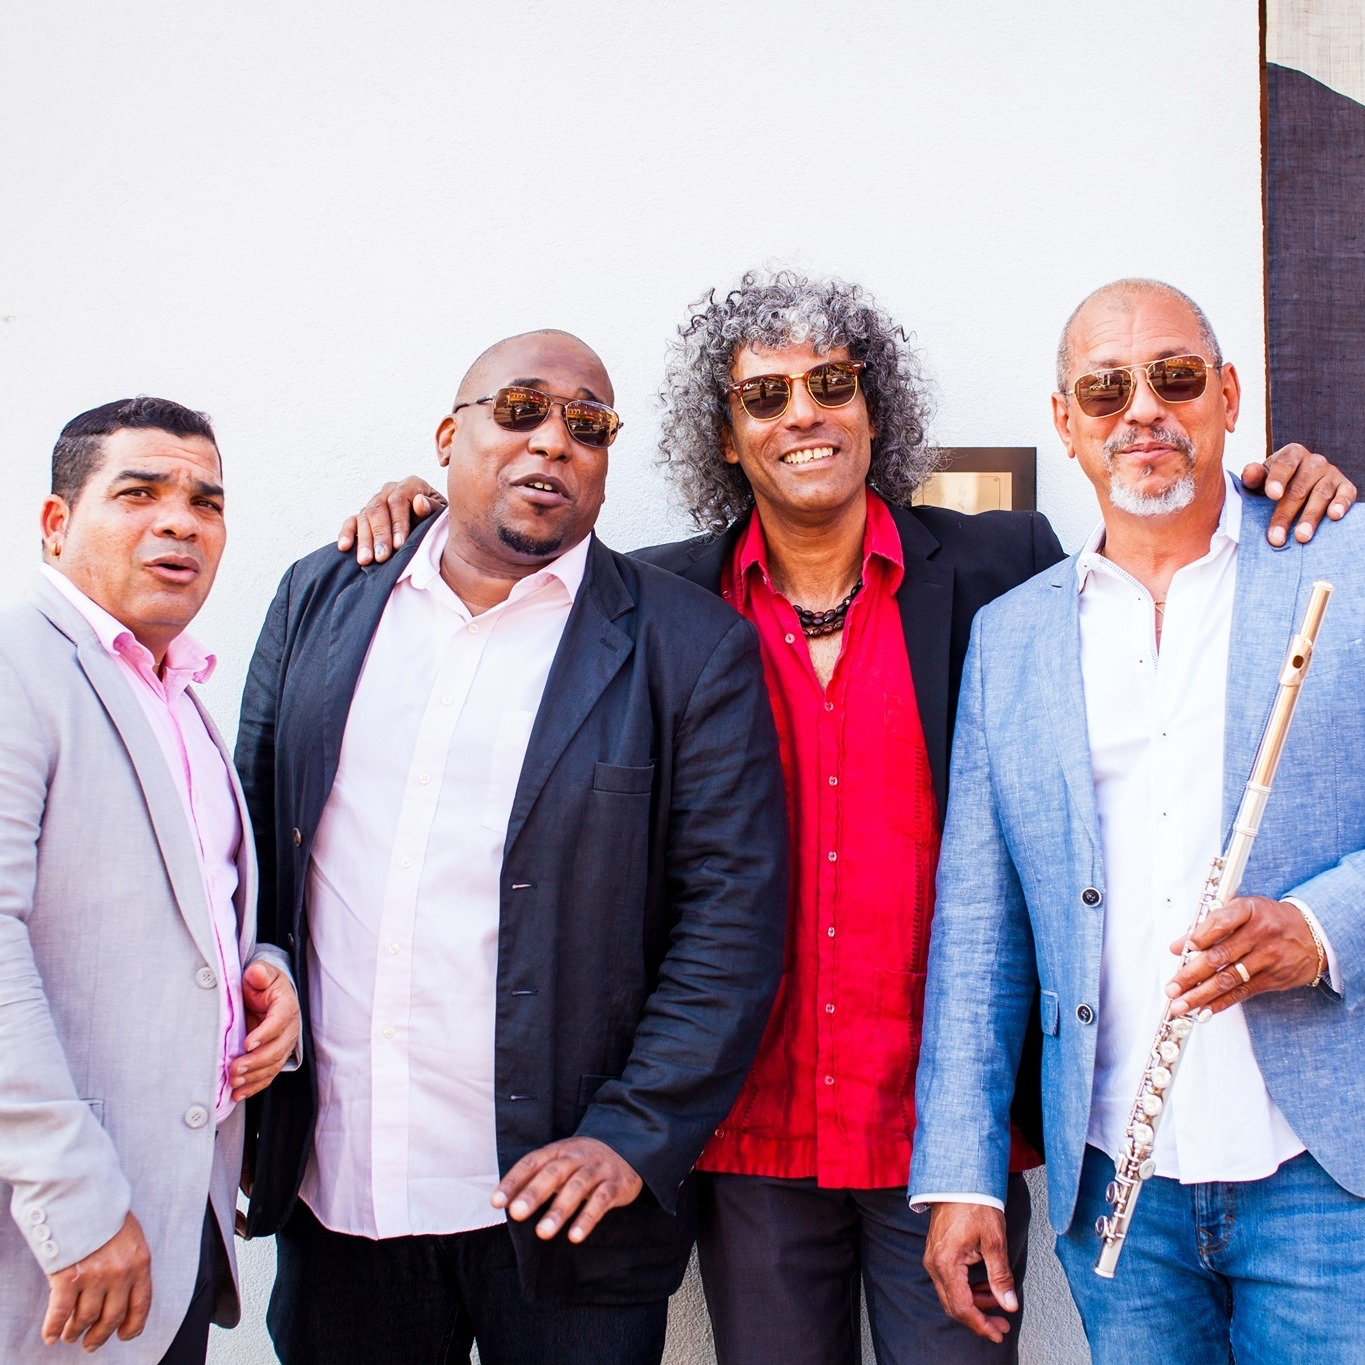 Guaracha y Son Quartet @cubantraditional  - Traditional Cuban quartet playing guaracha, bolero, changüí and guajira from the 30s to 60s plus original compositions by lead vocalist Pablosky Rosales.